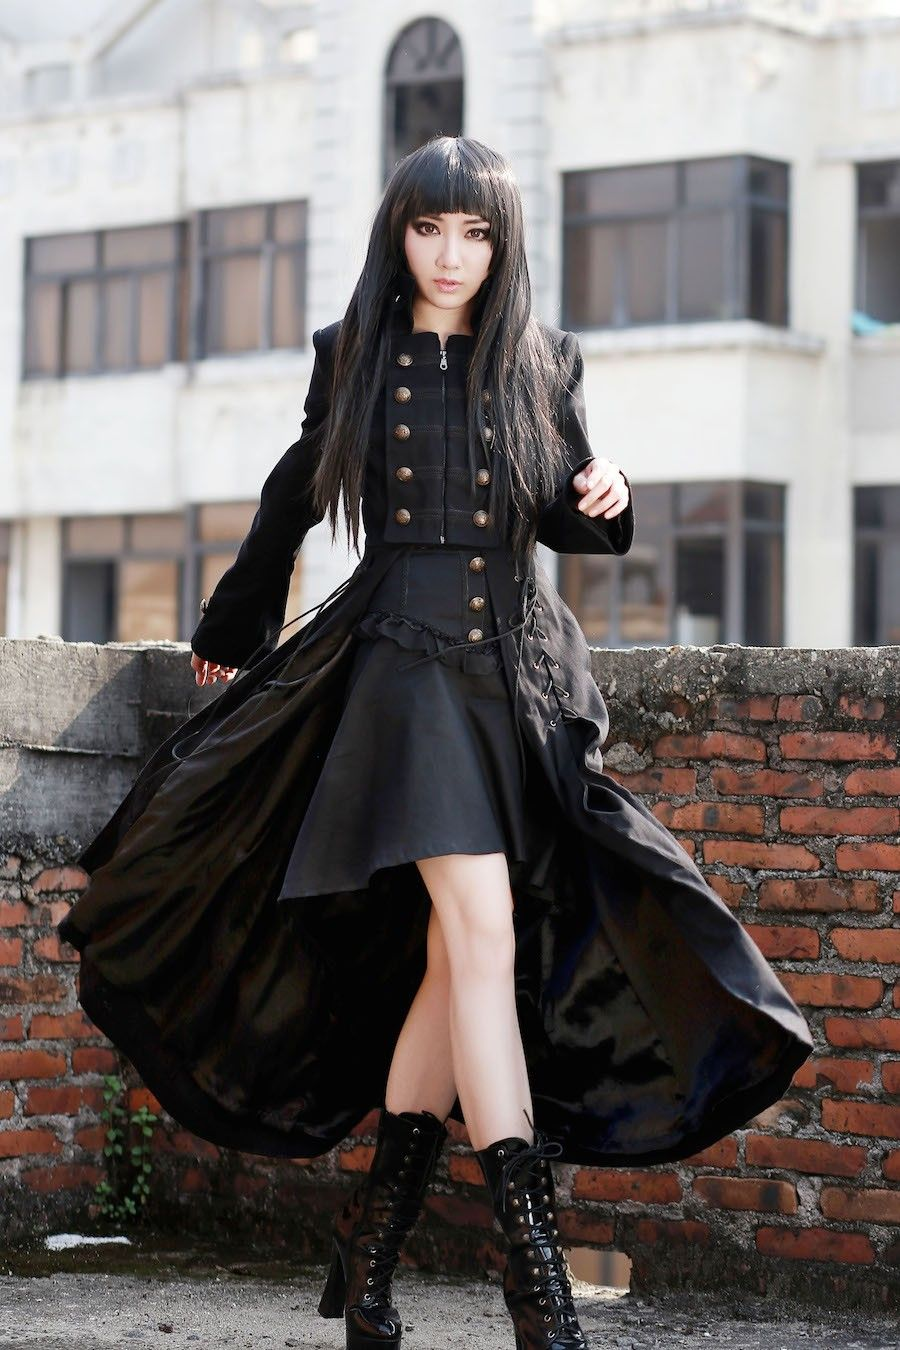 photo n°1  Long manteau gothique femme \u0027black dove\u0027